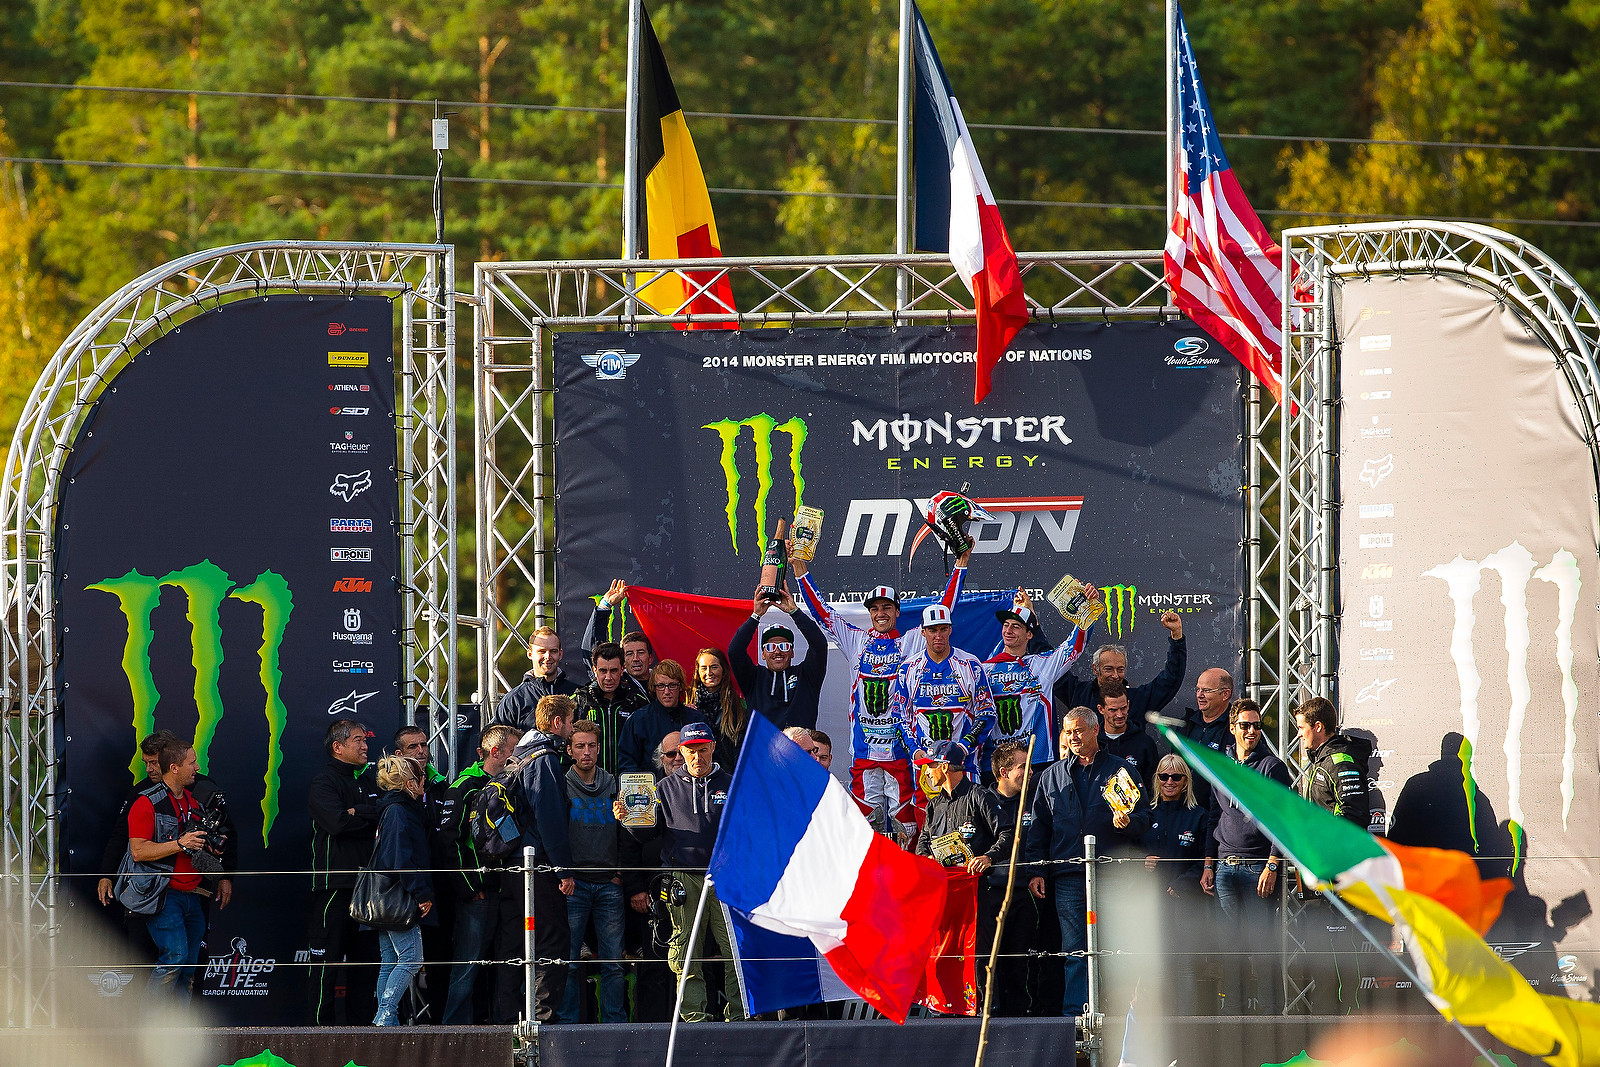 Podium - kardy - Motocross Pictures - Vital MX